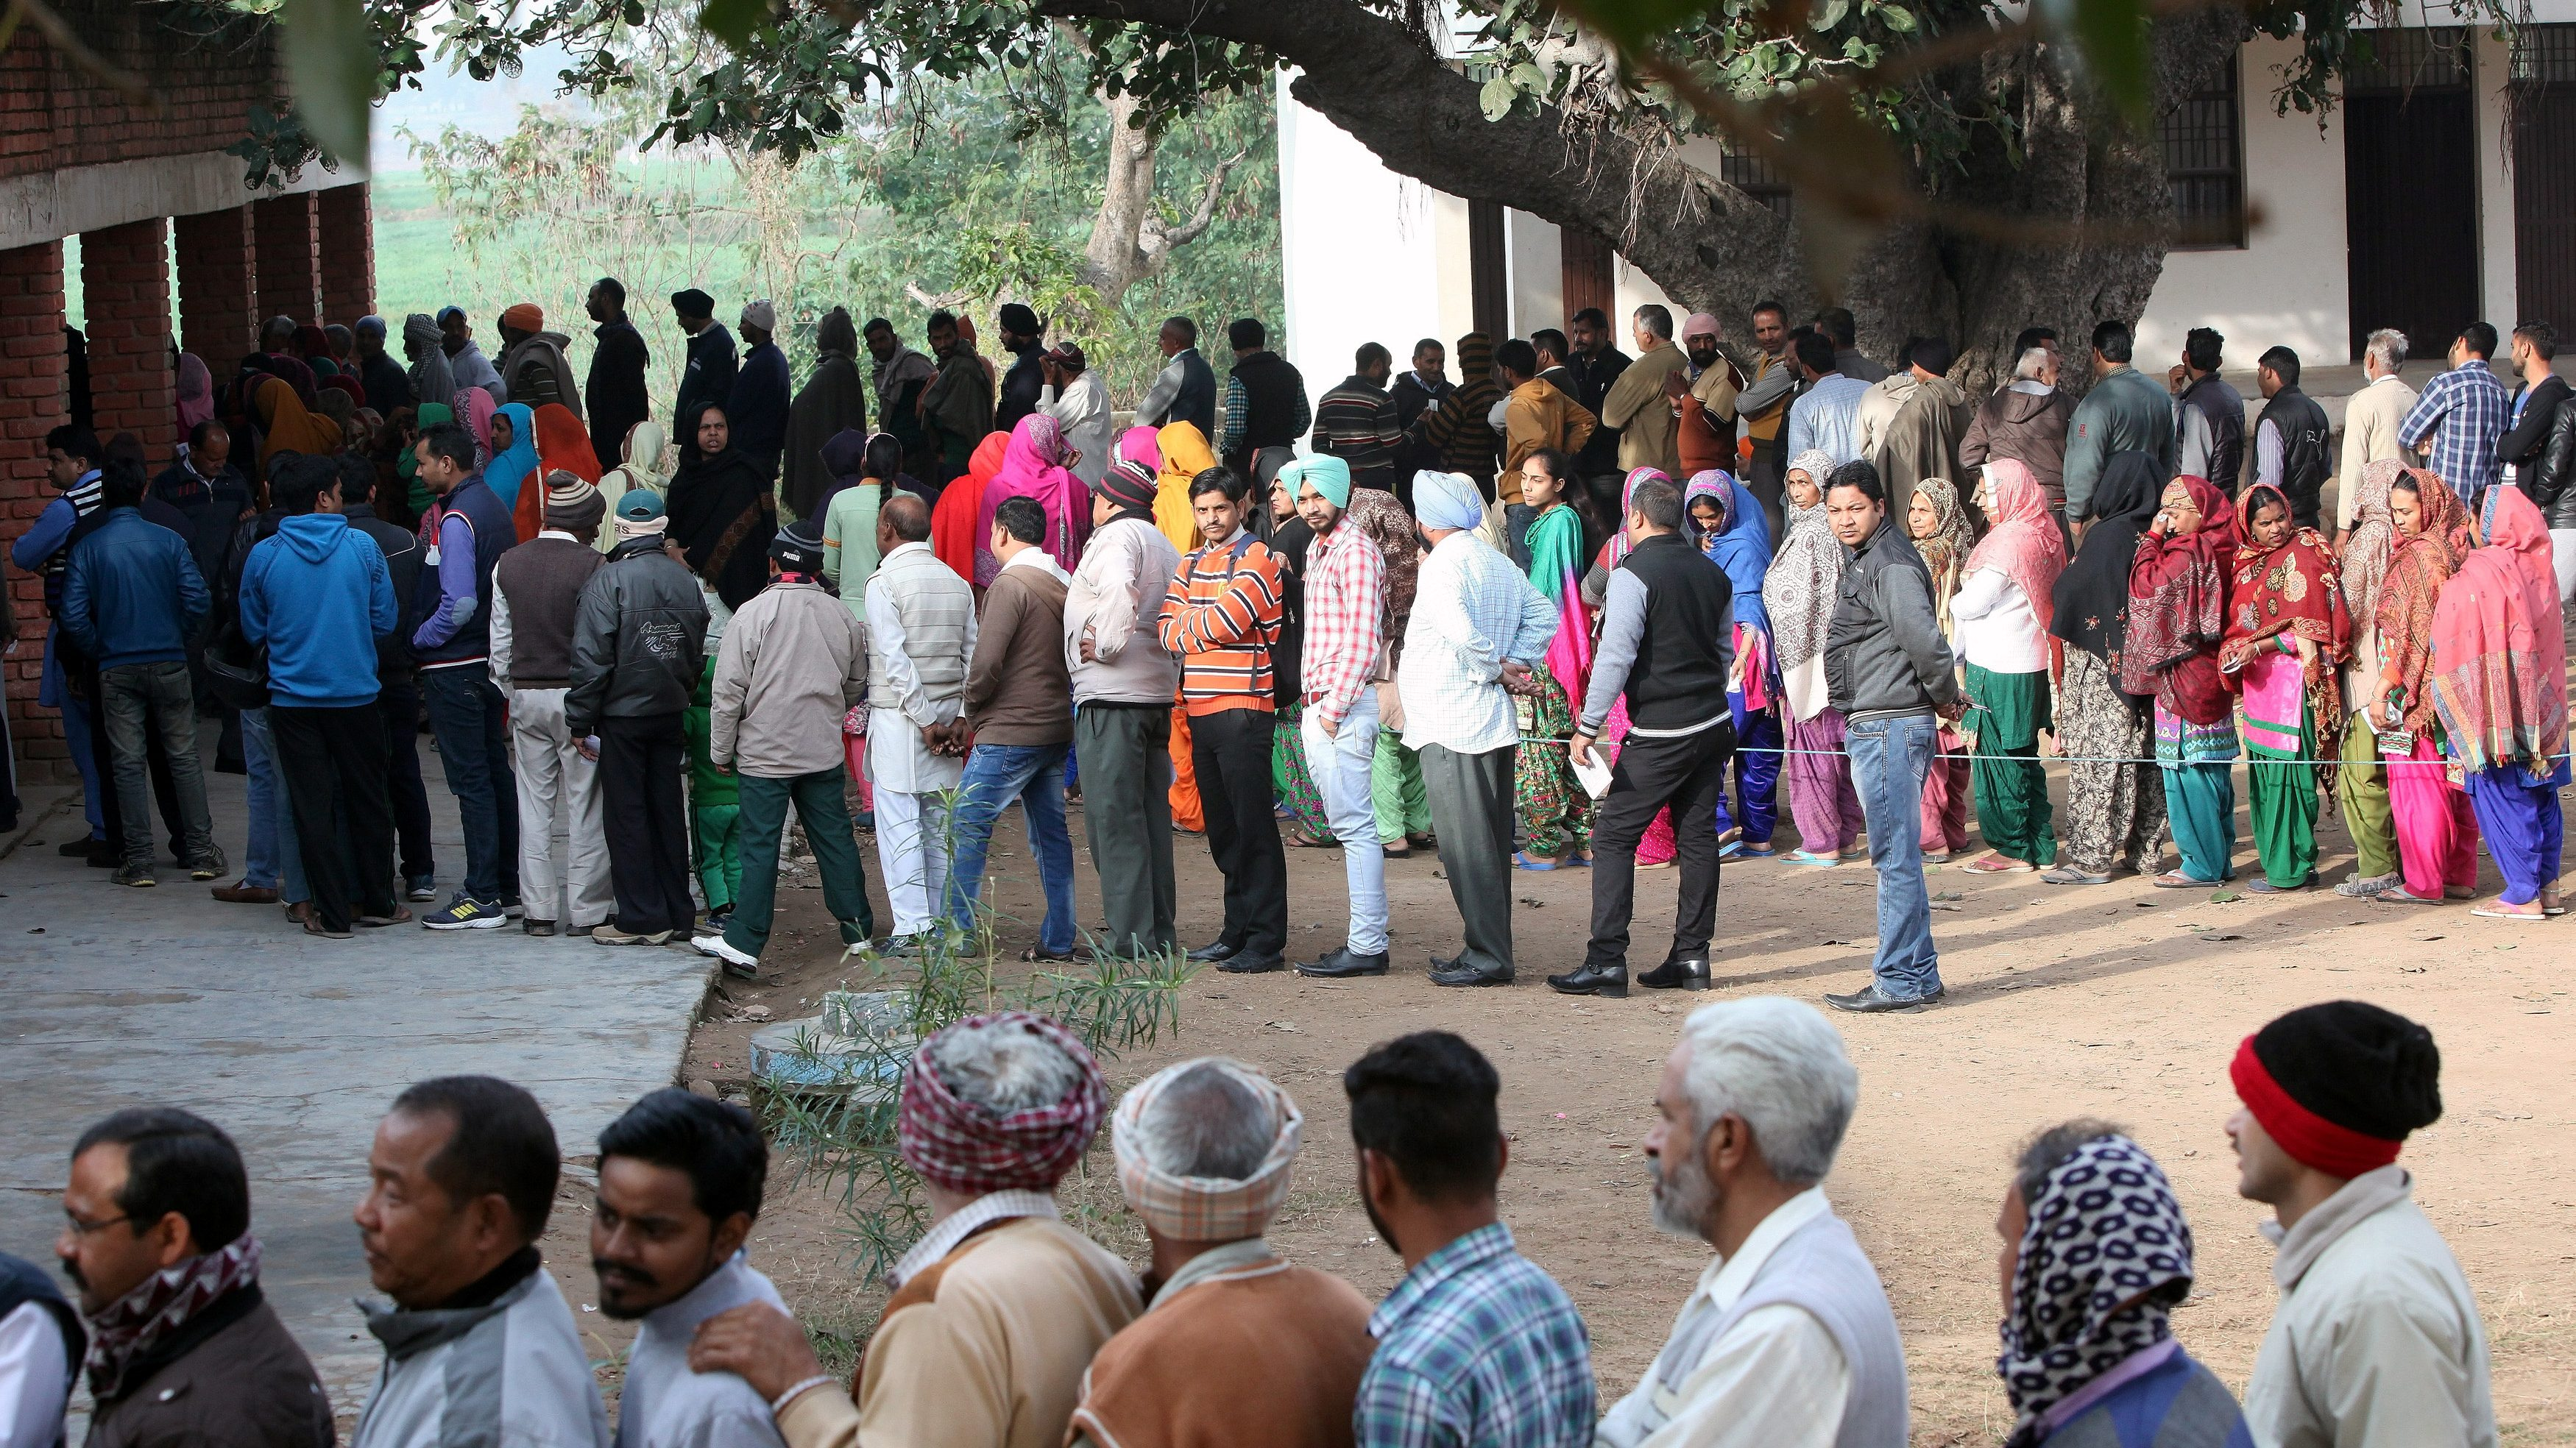 Voters line up to cast their votes outside a polling station during the state assembly election in the northern state of Punjab, in the village of Nada, India, February 4, 2017. REUTERS/Ajay Verma - RC1B4068D730